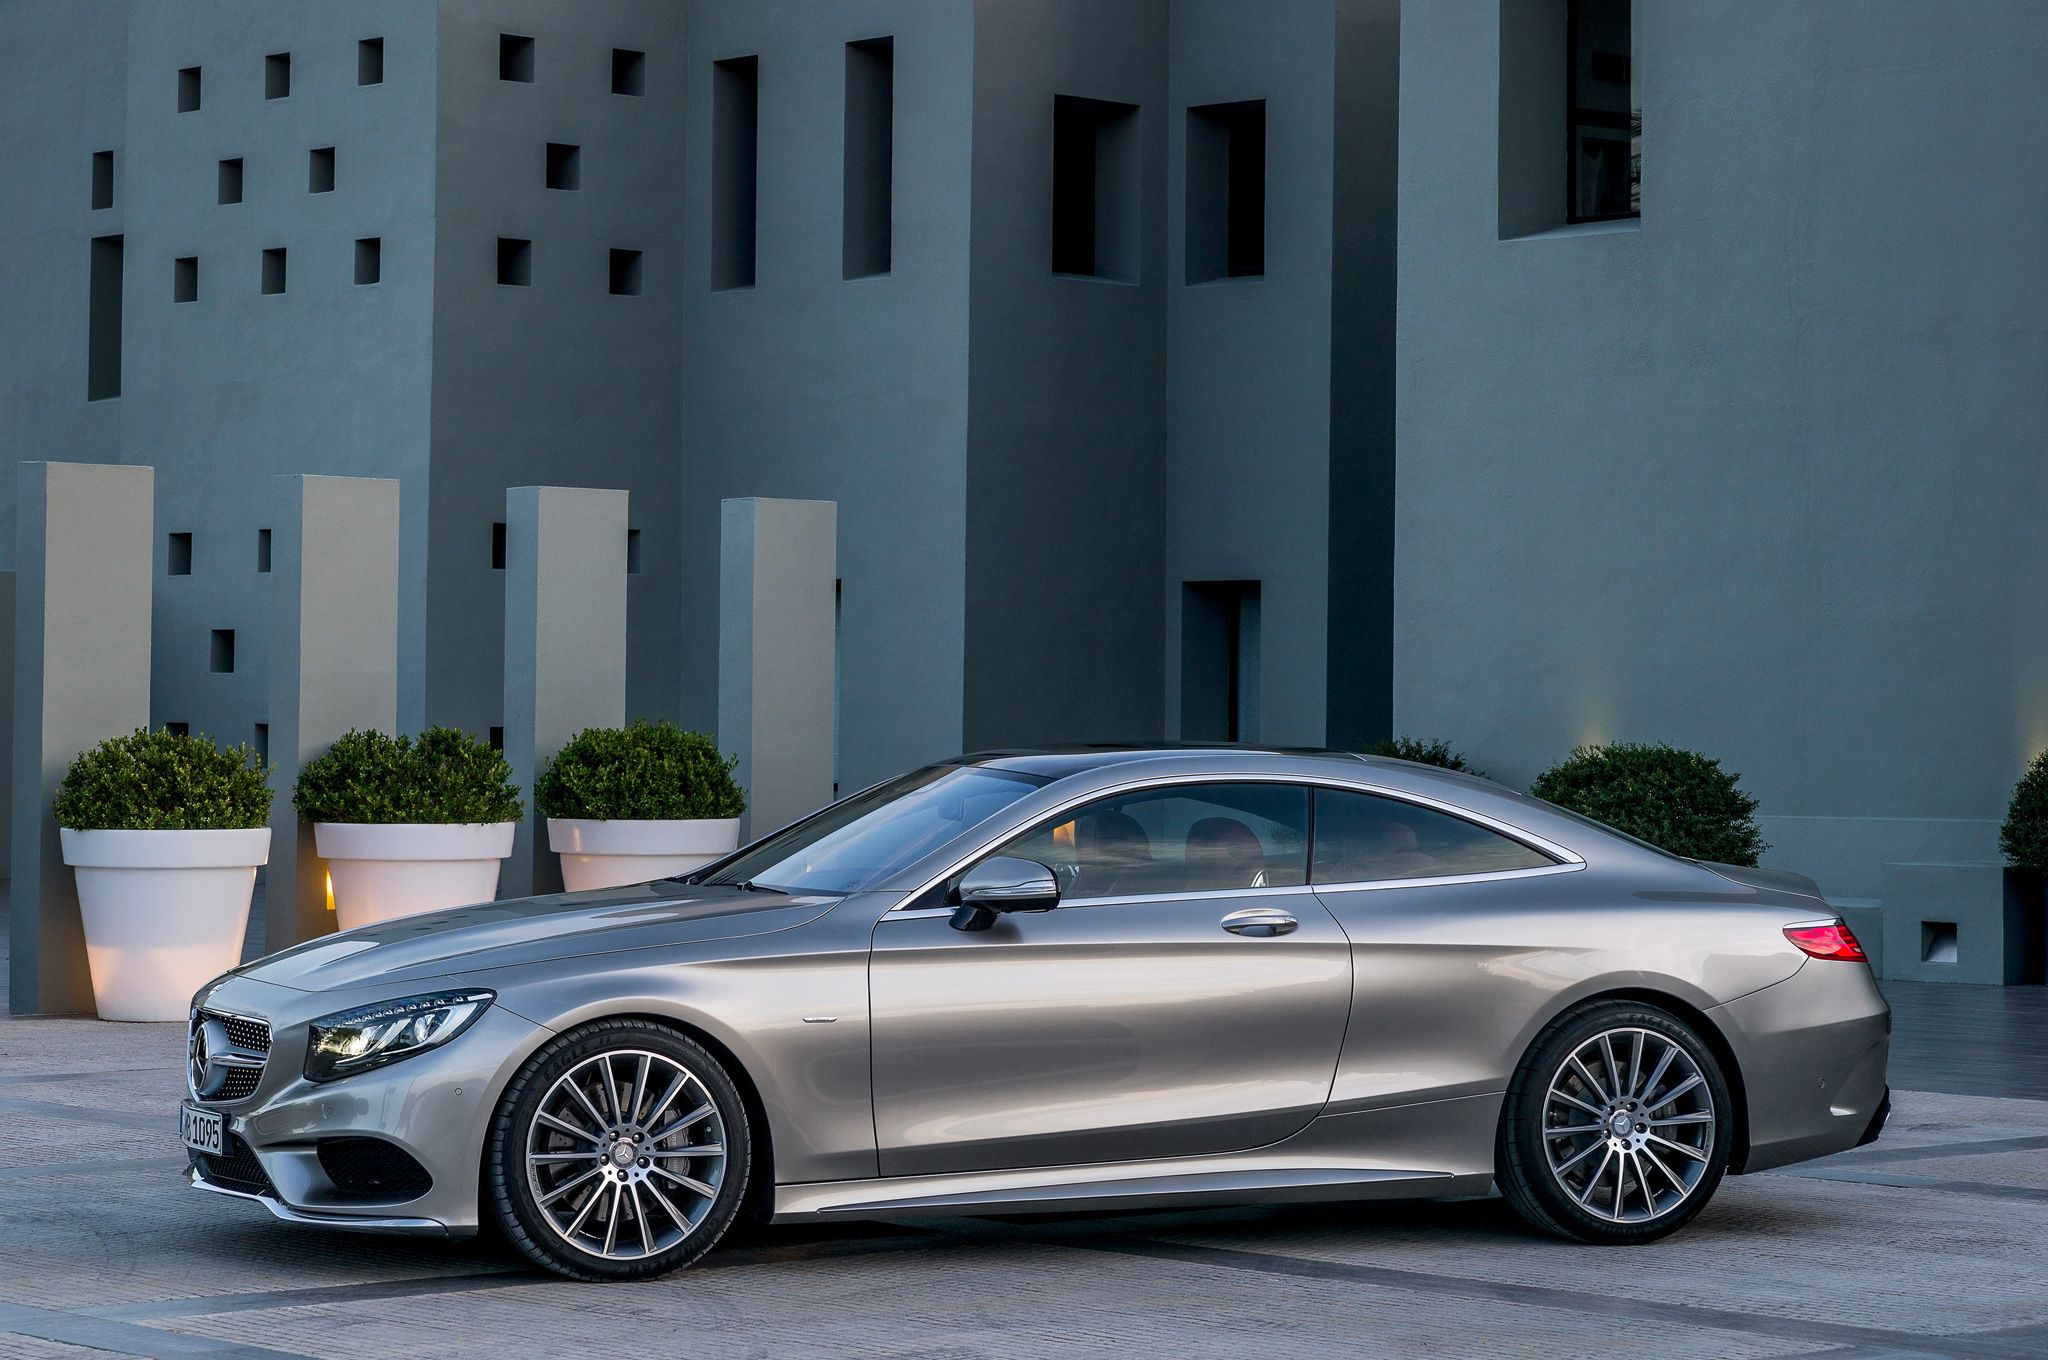 mercedes coupe 2015 | 2015 Mercedes Benz S Class Coupe Side Front ...